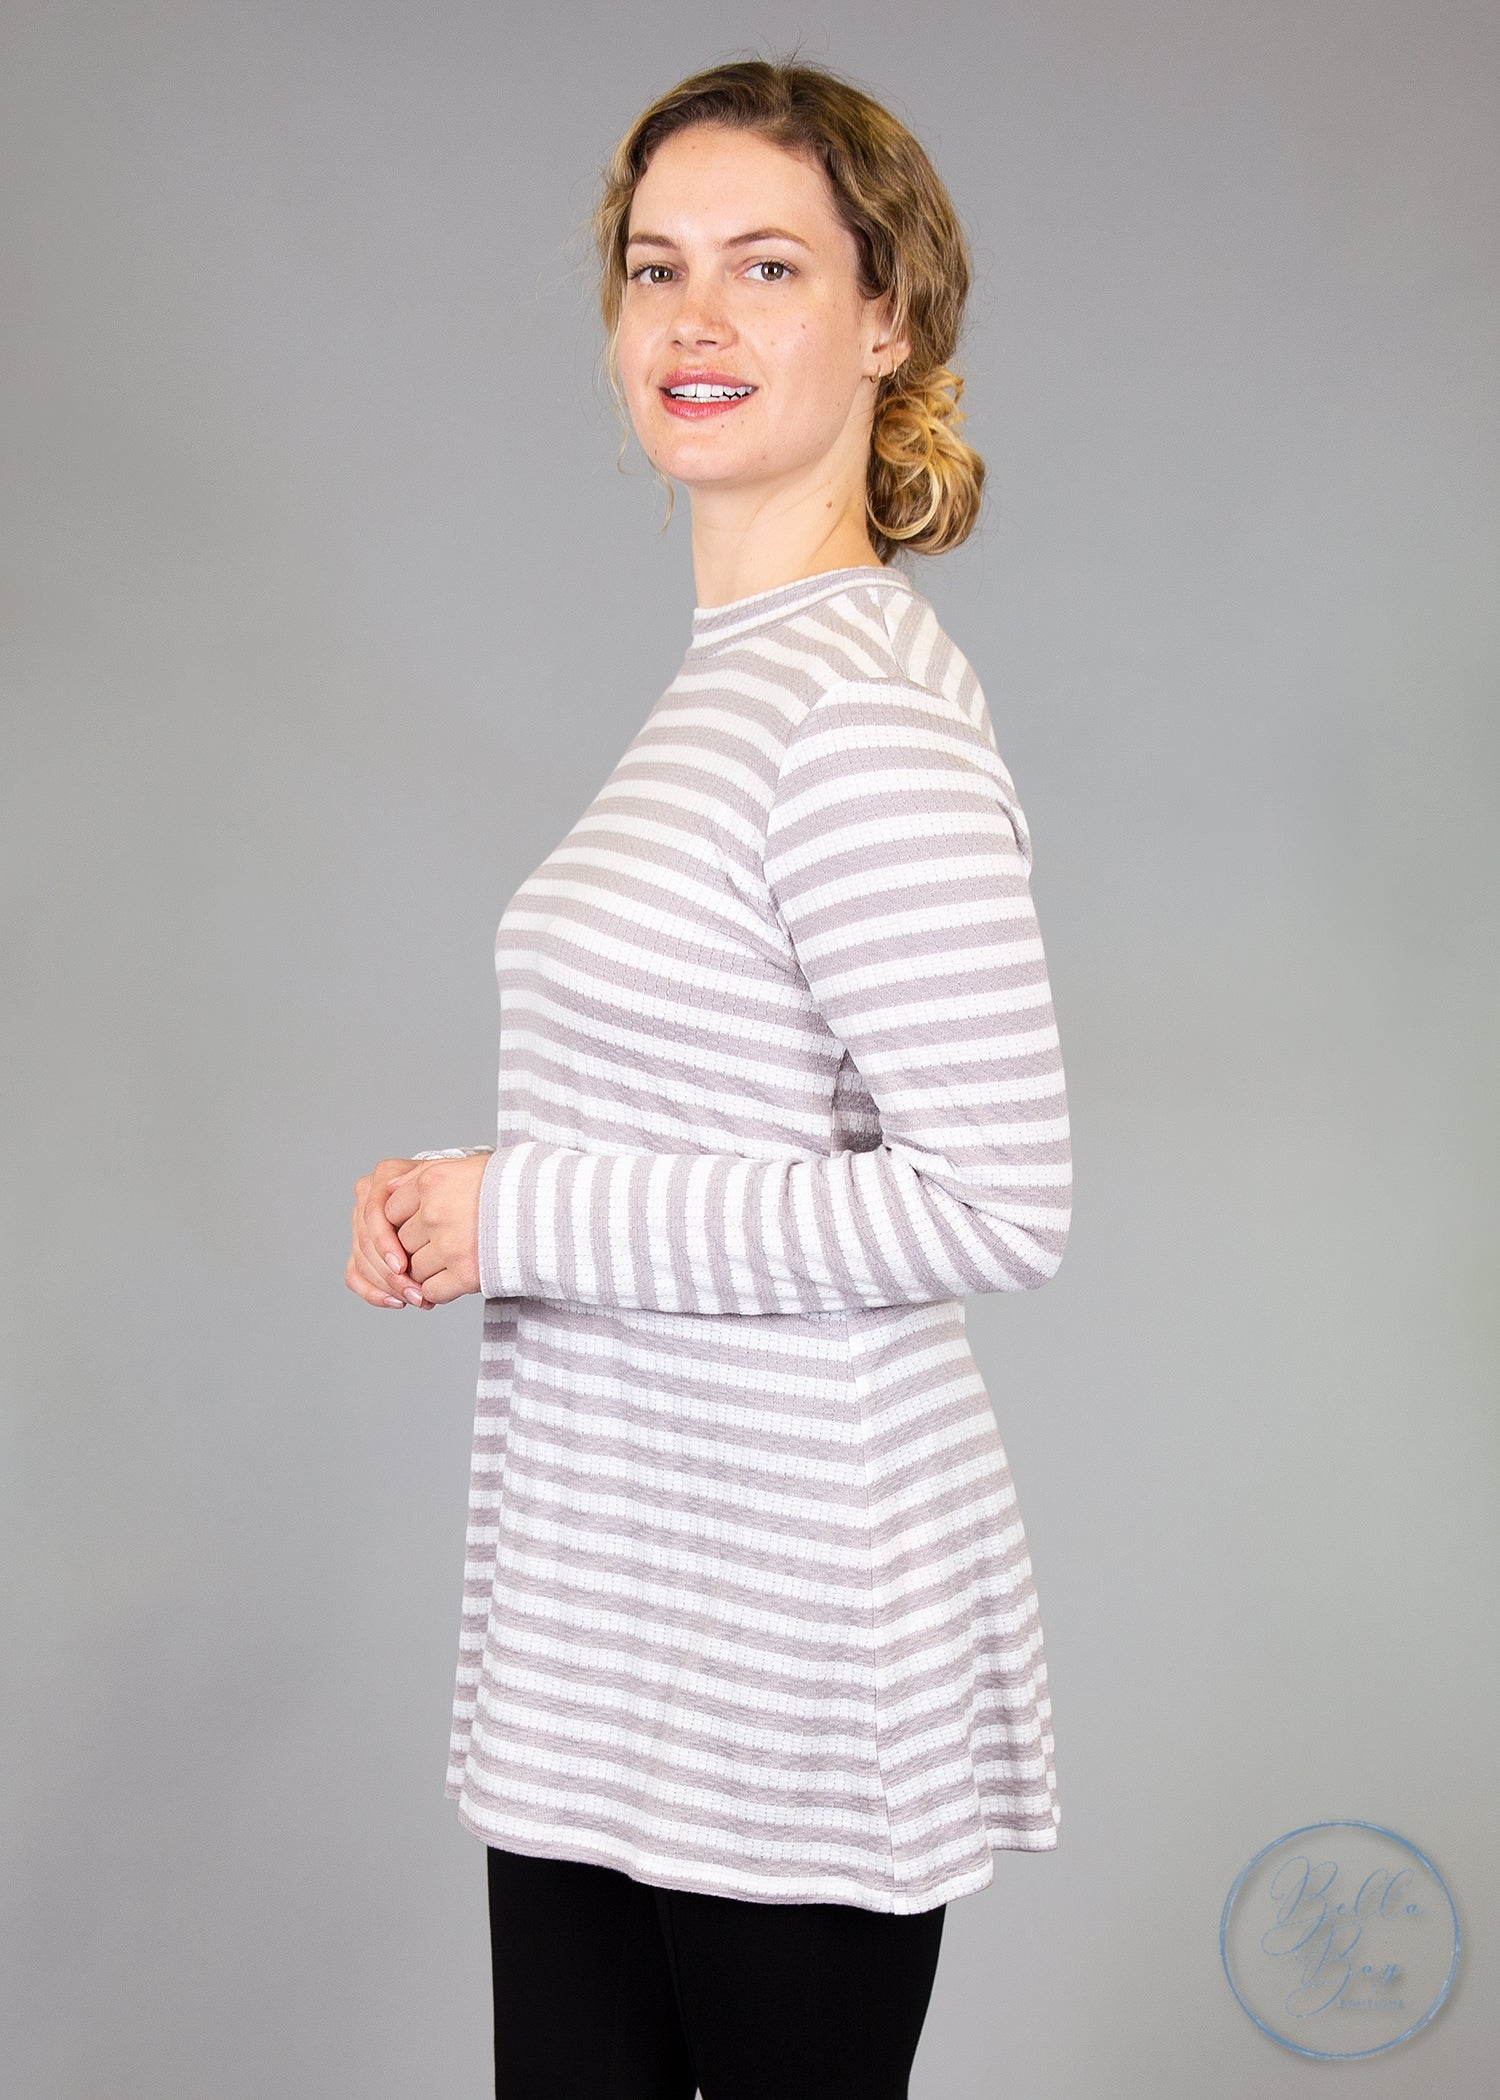 Paisley Raye Statice Long-sleeve- Grey and White Stripe (L) - Paisley Raye with Bella Bay Boutique, shop now at  https://shopbellabay.com/ or locally in Newport Oregon